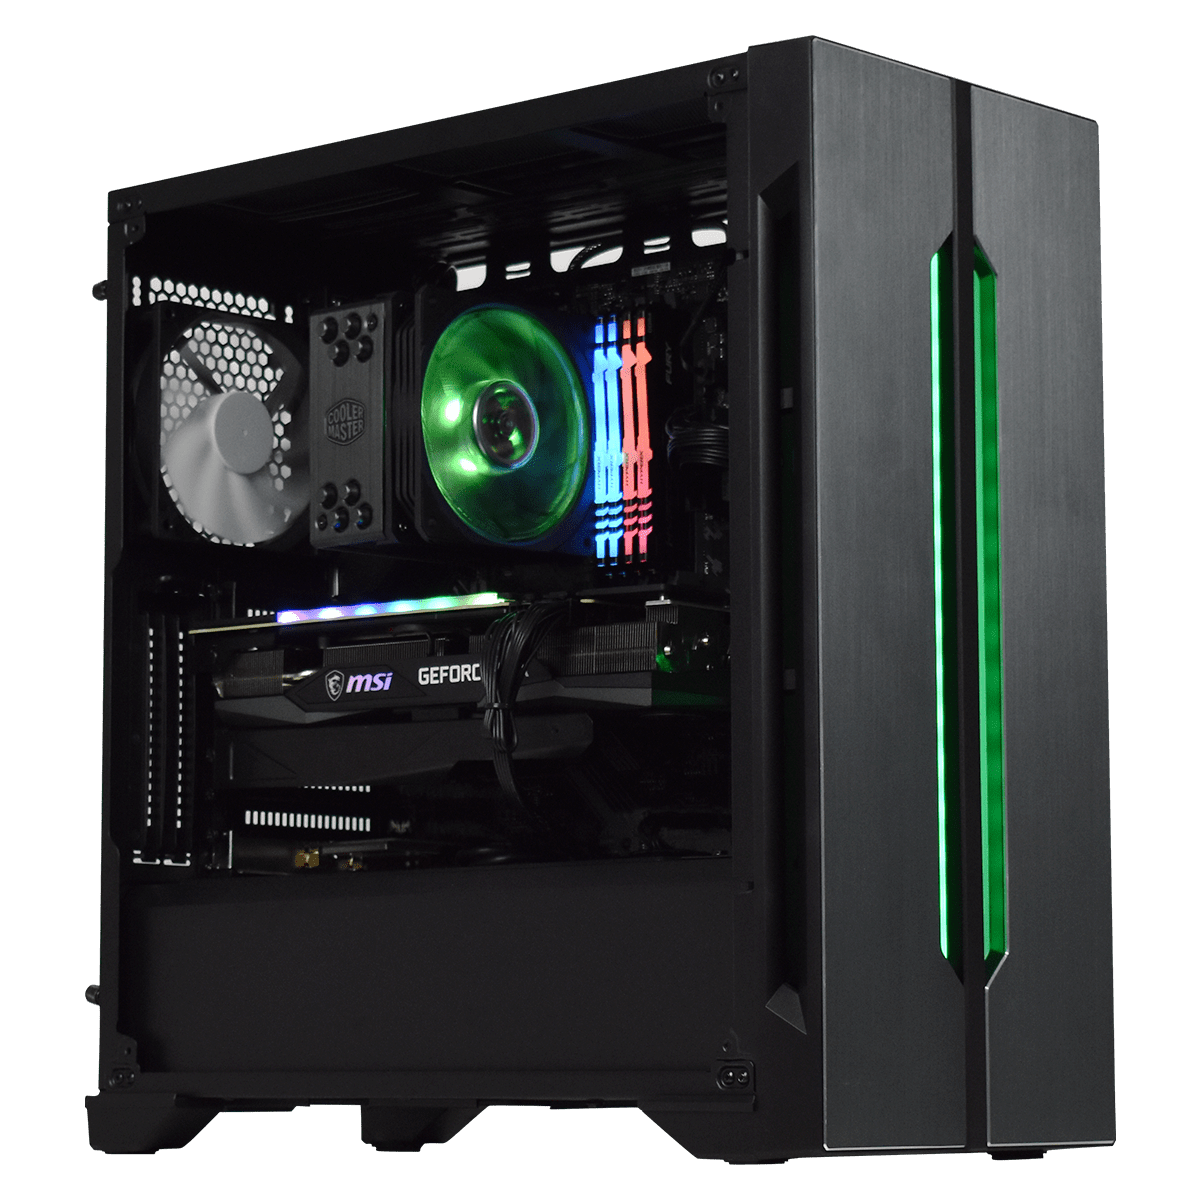 PC Gamer Cybertek CONFIG CYBERTEK ELYSIOM